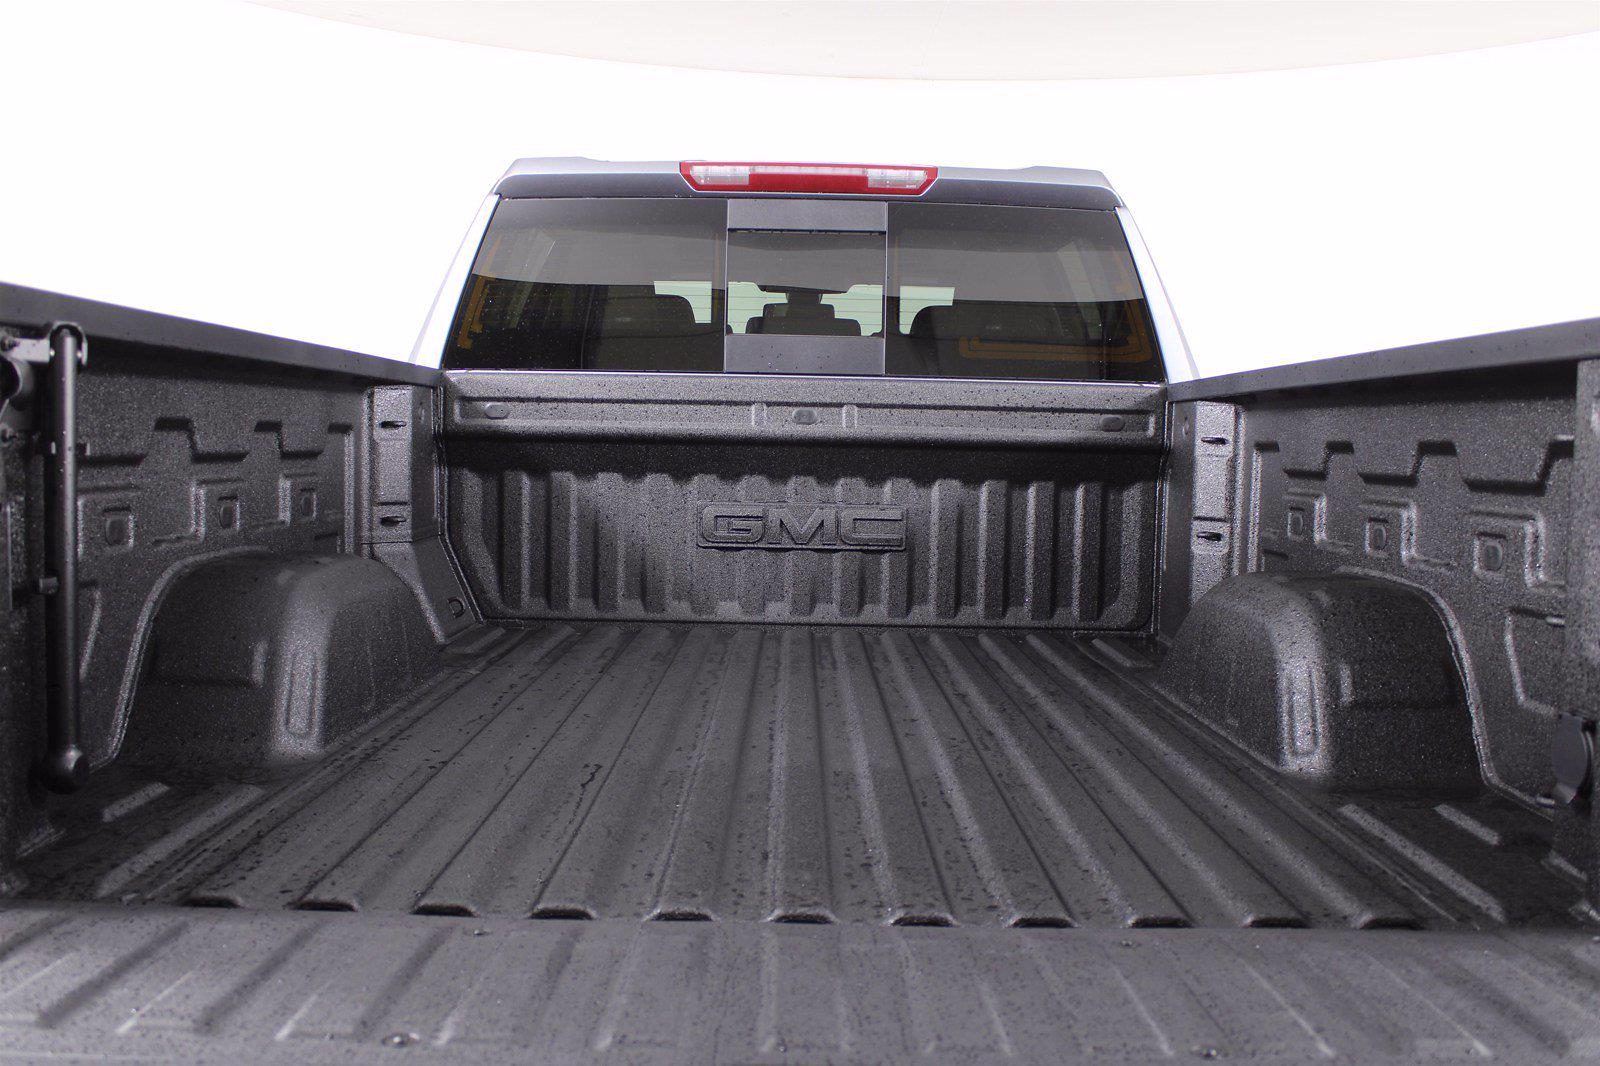 2021 GMC Sierra 1500 Crew Cab 4x4, Pickup #D410592 - photo 8